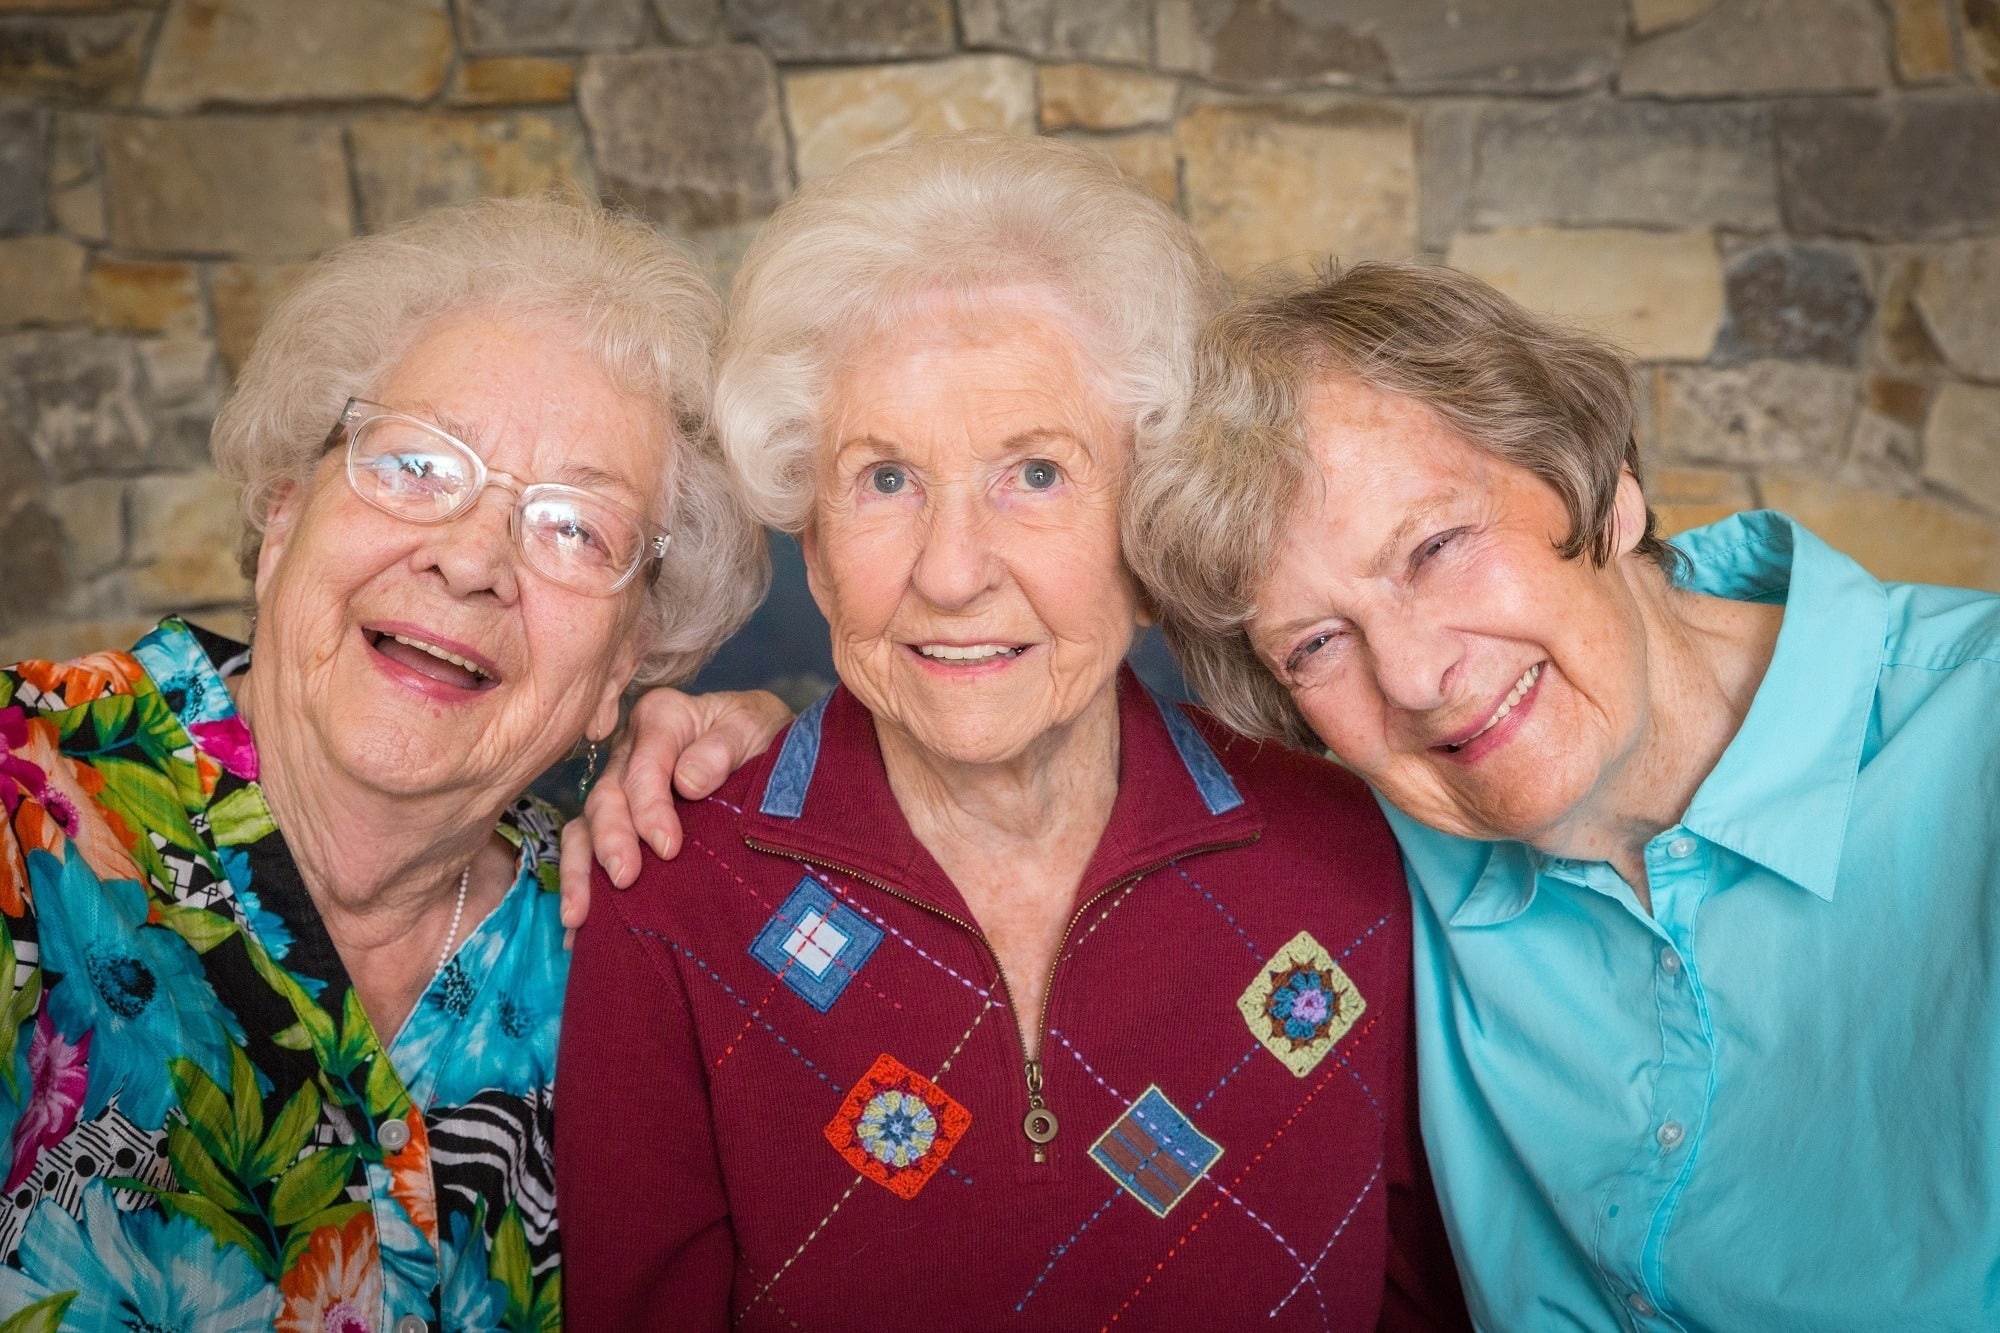 Residents enjoy a moment together in Whitefish